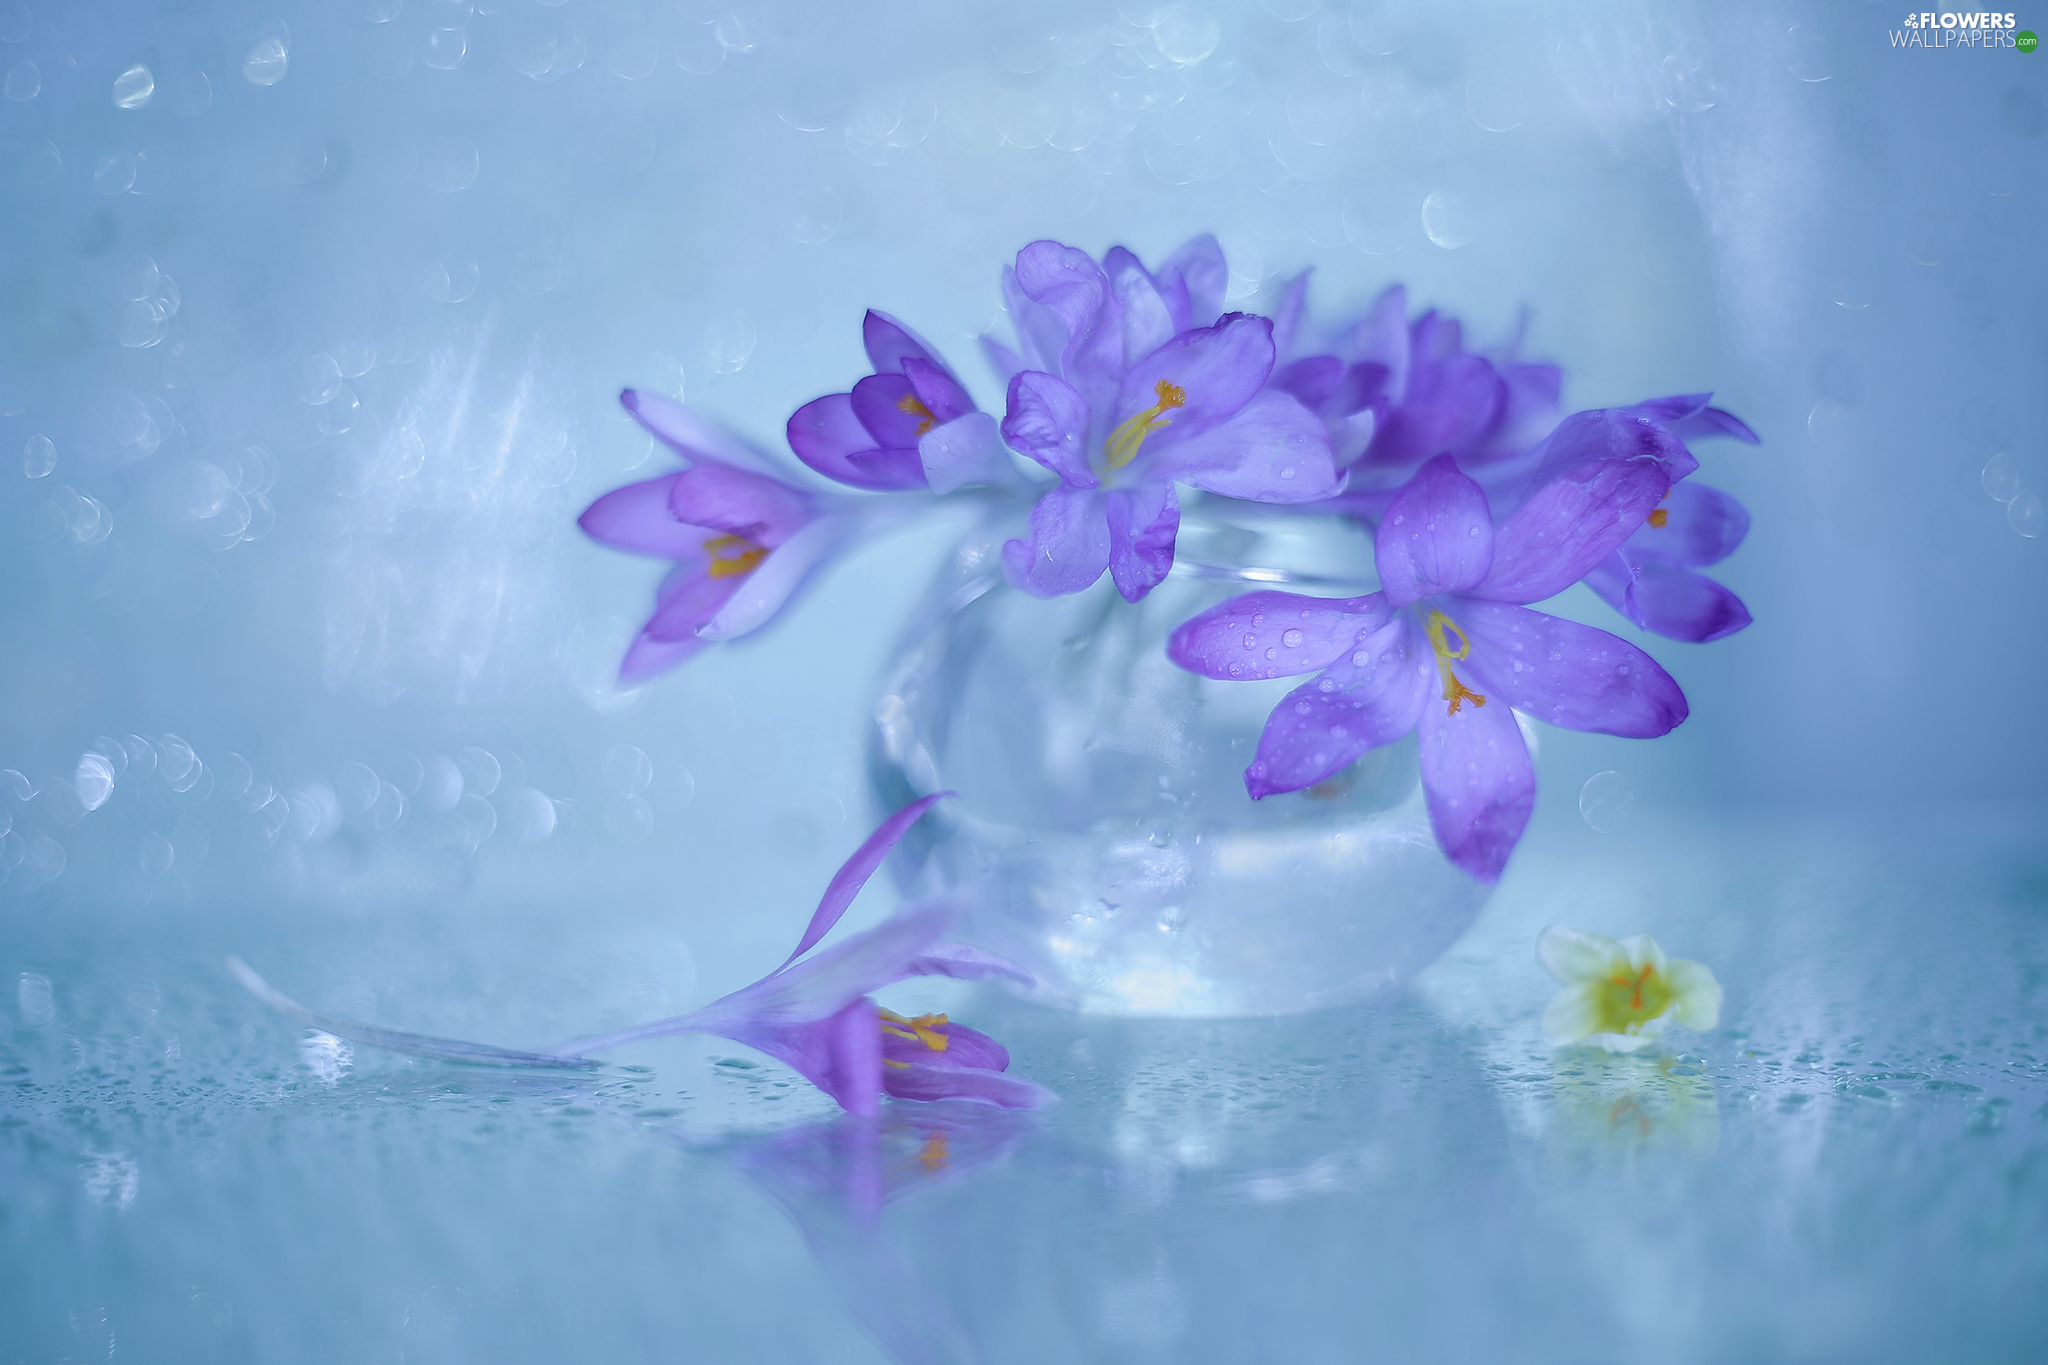 glass, vase, purple, Flowers, crocuses